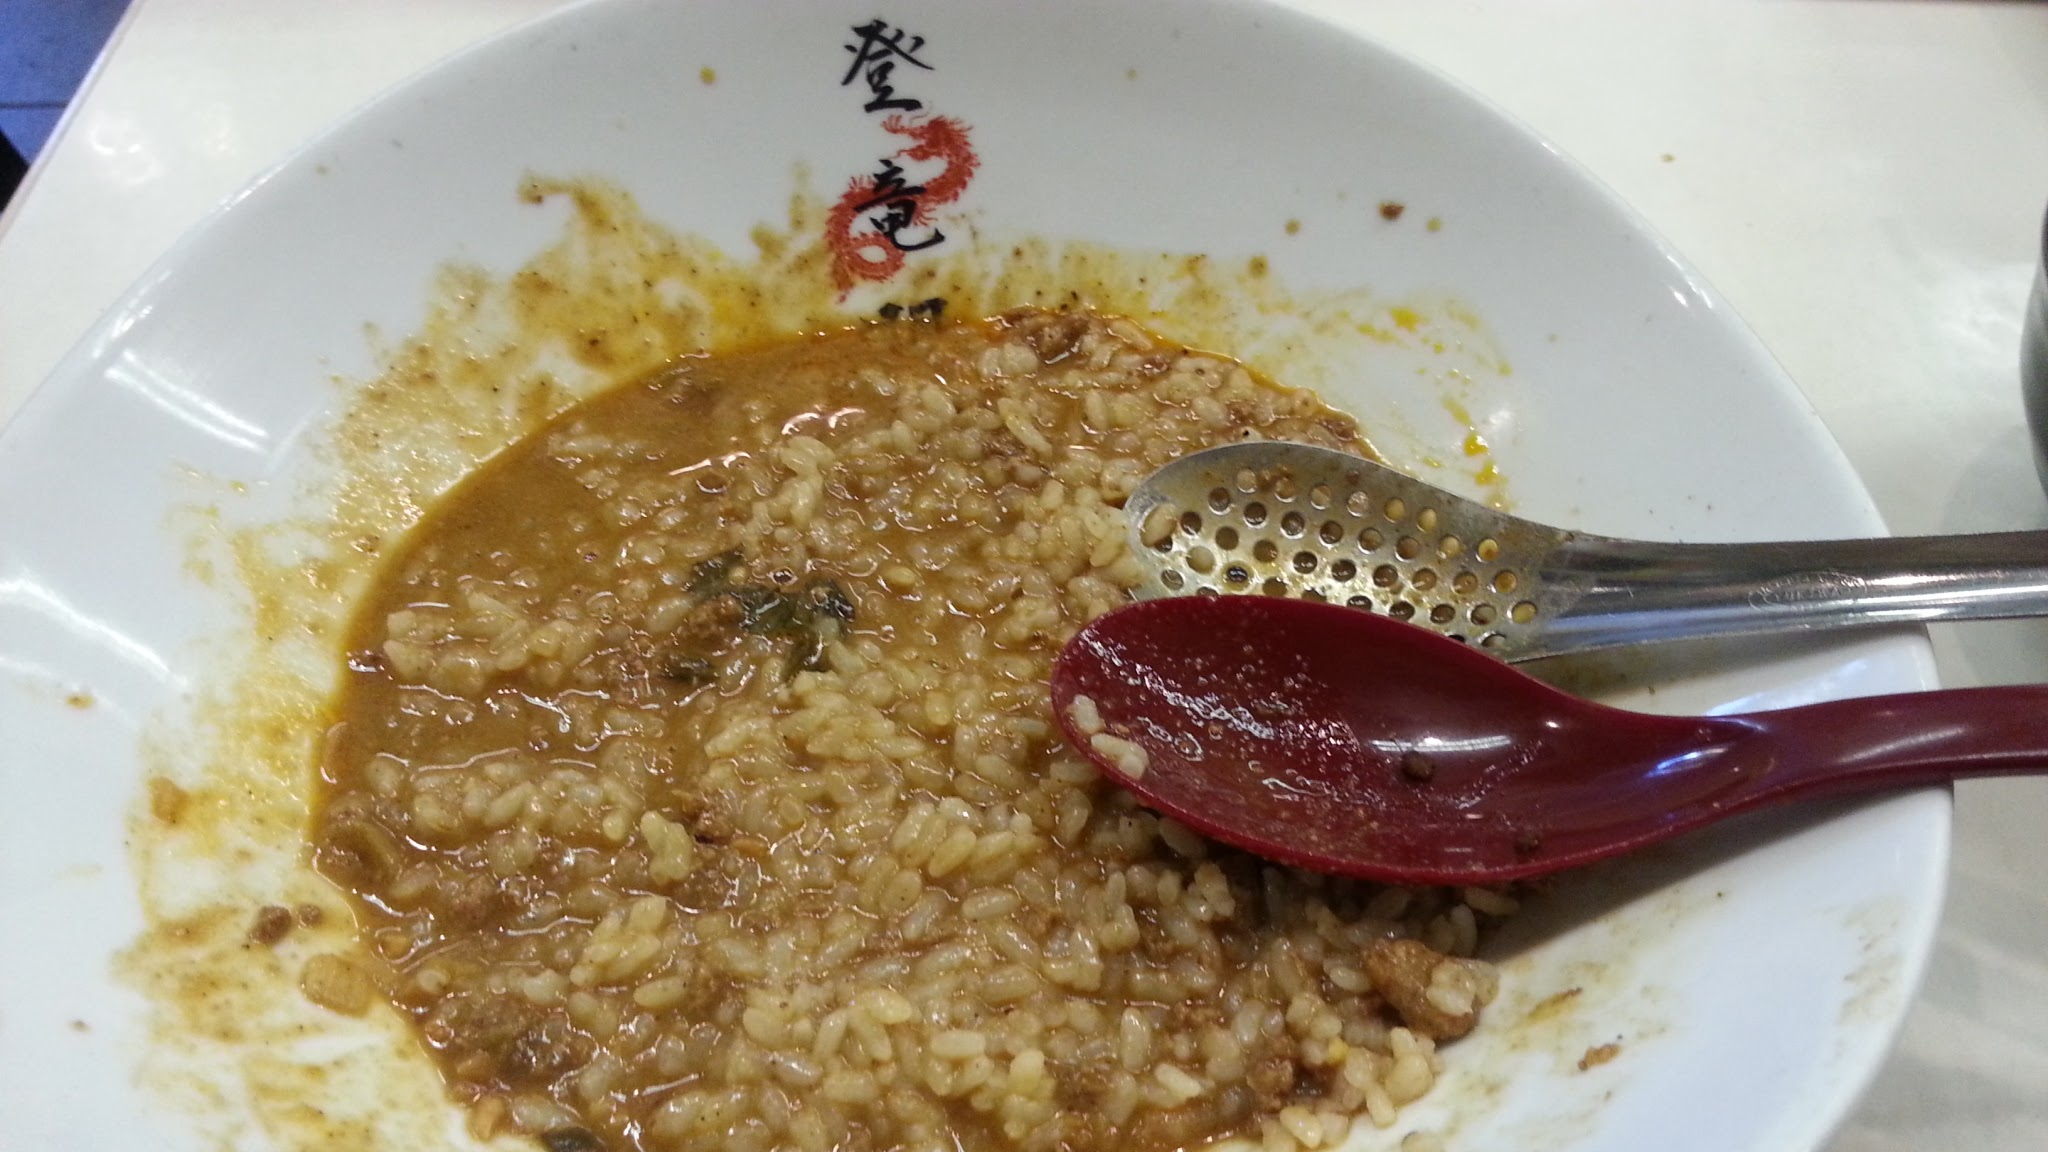 I added rice to the remaining sauce and tried to eat it like a risotto